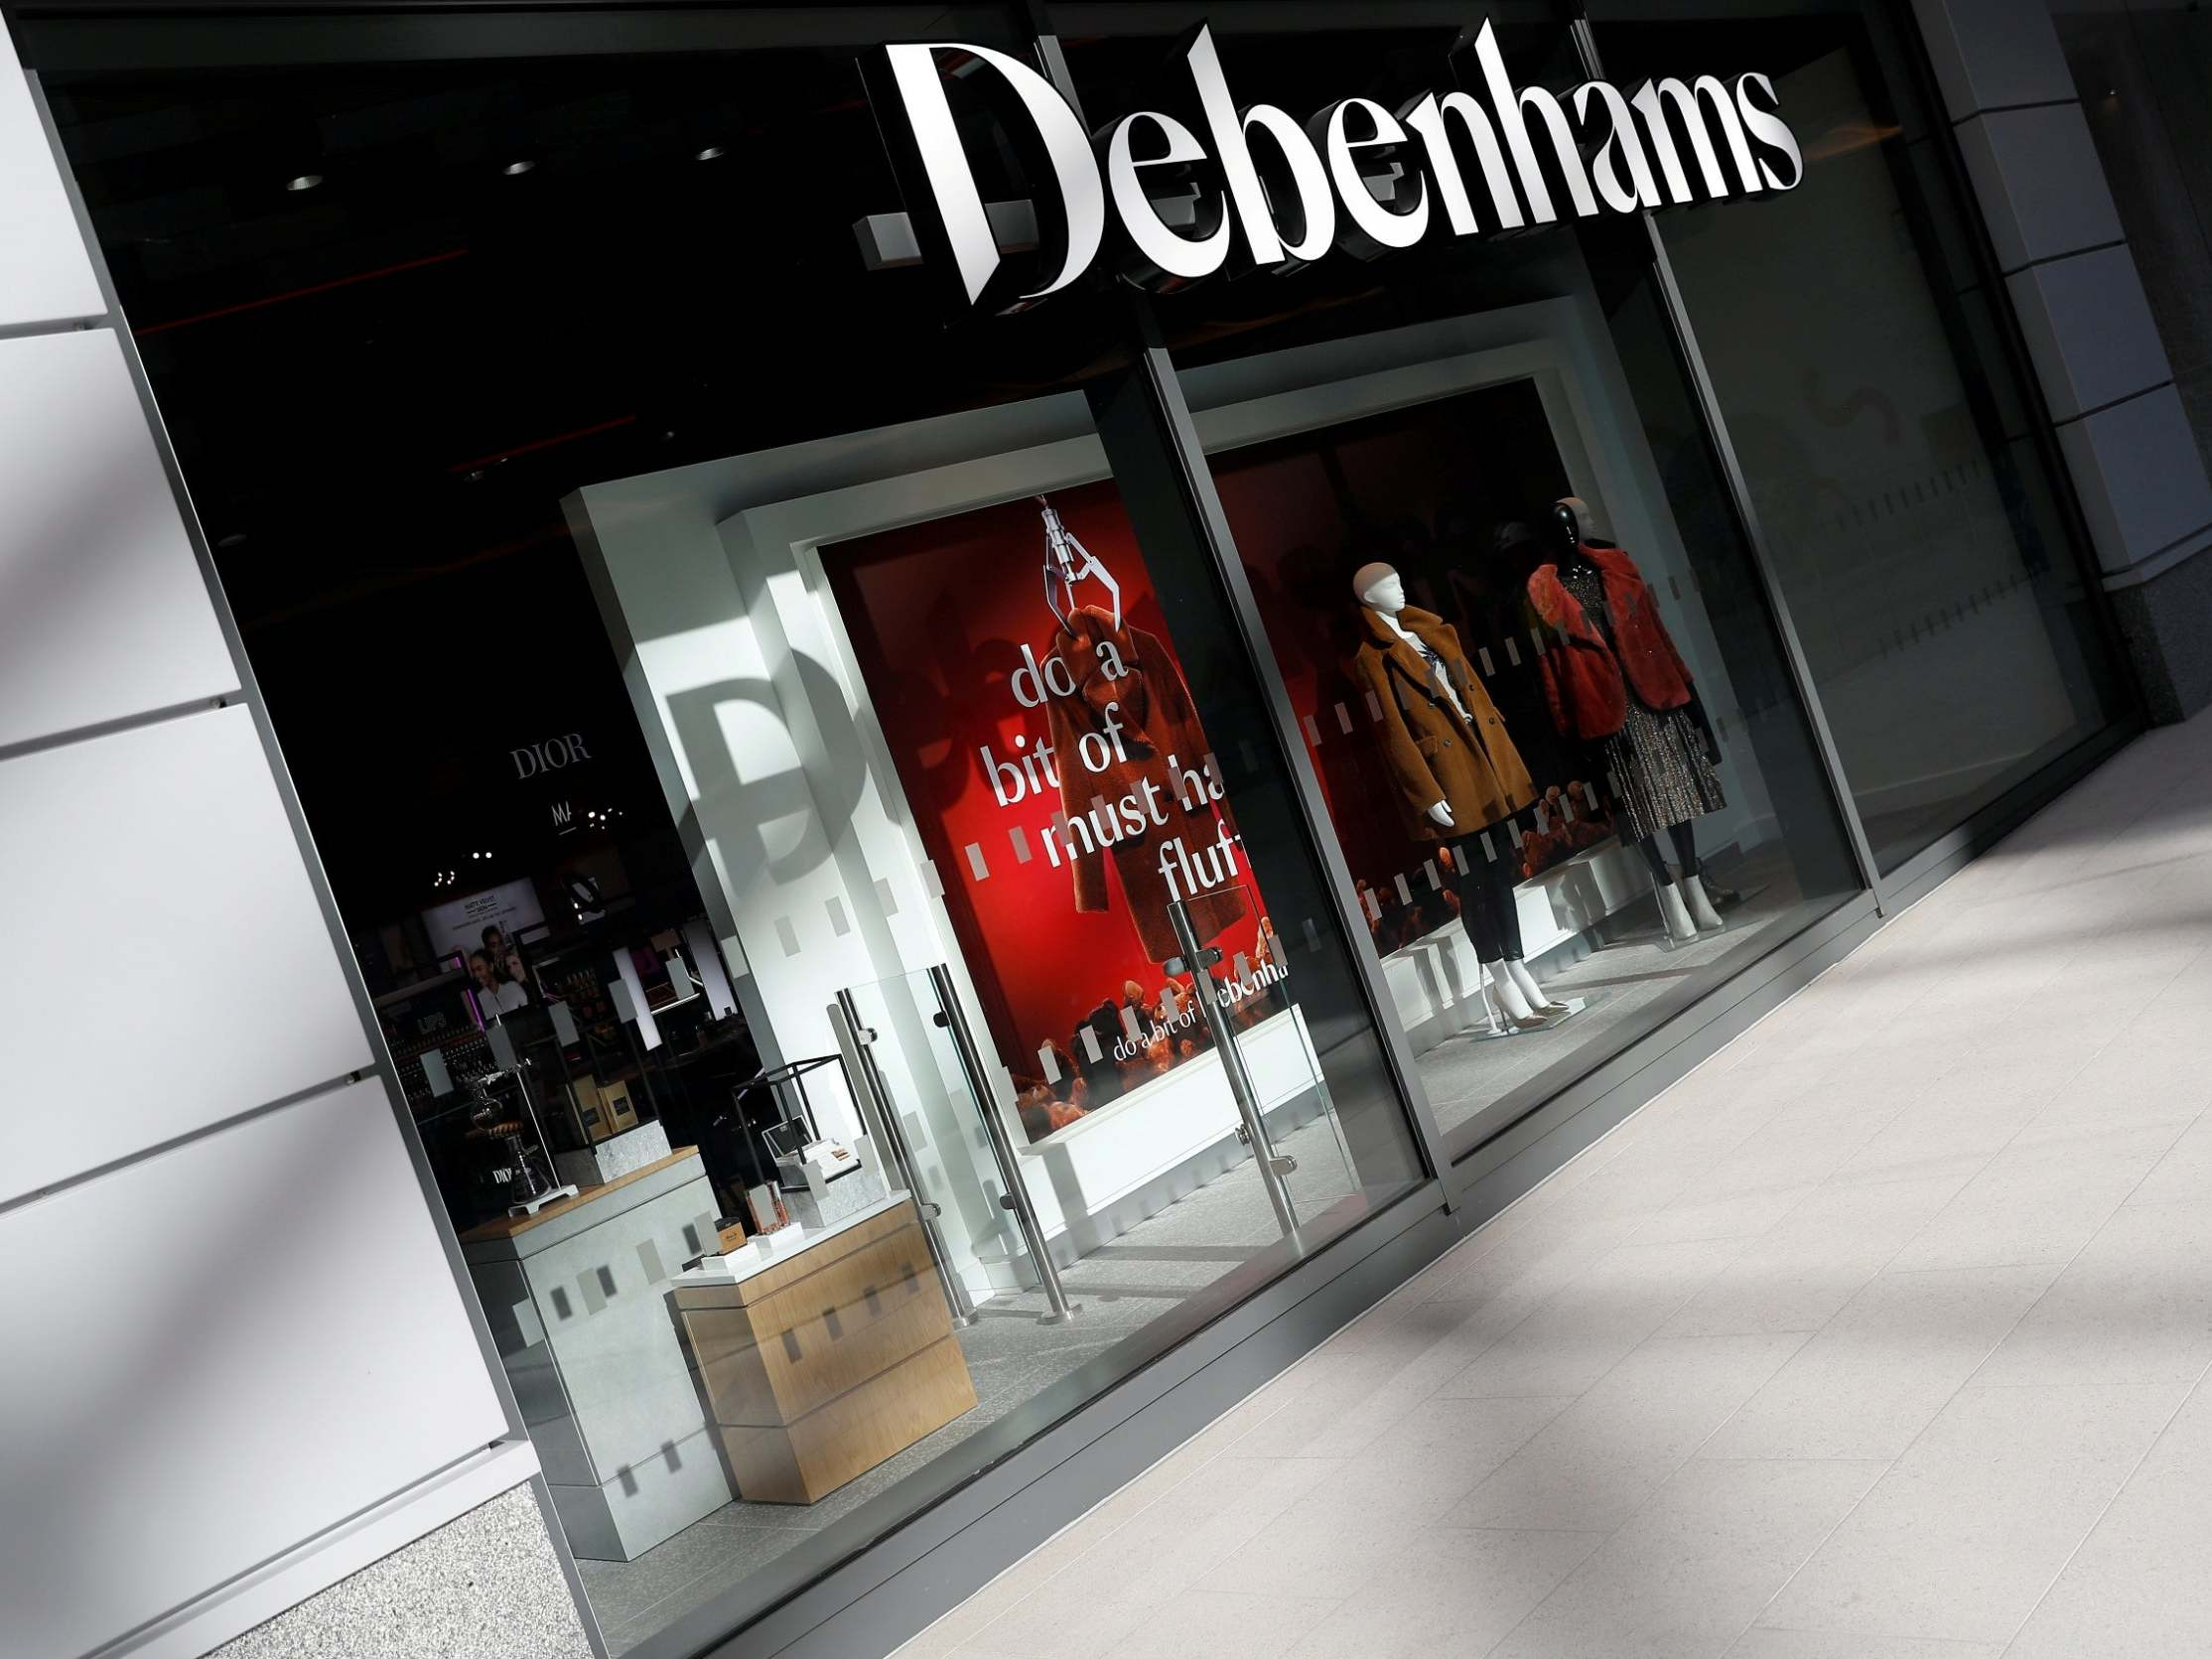 Debenhams to file for administration after stores forced to close during coronavirus lockdown